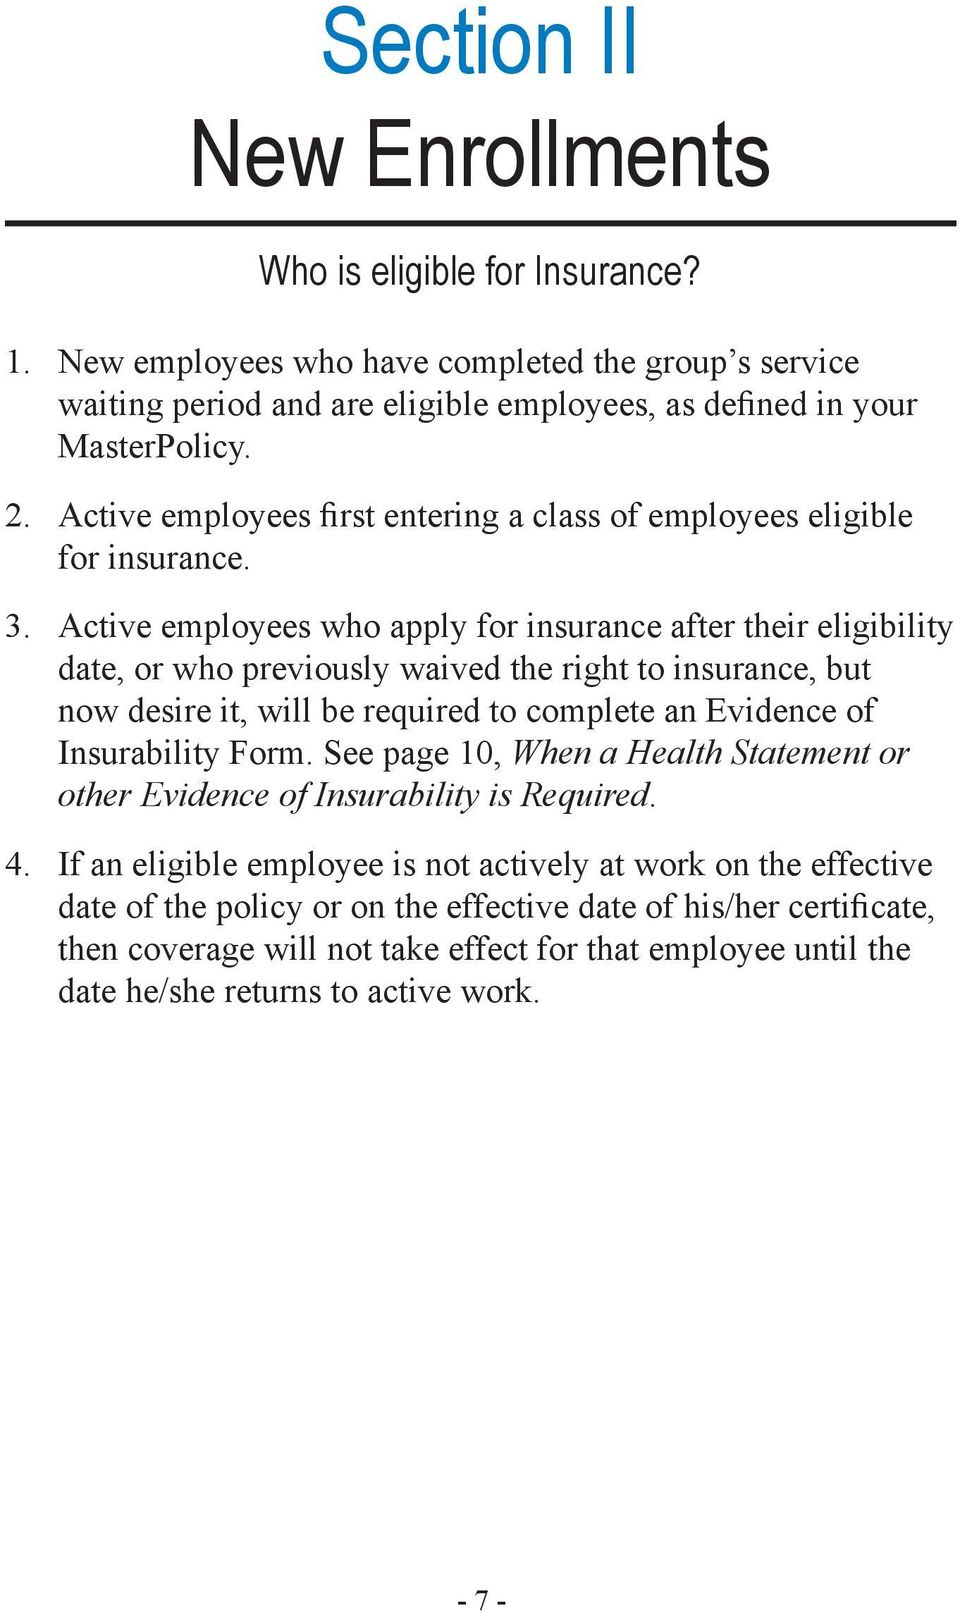 Active employees who apply for insurance after their eligibility date, or who previously waived the right to insurance, but now desire it, will be required to complete an Evidence of Insurability